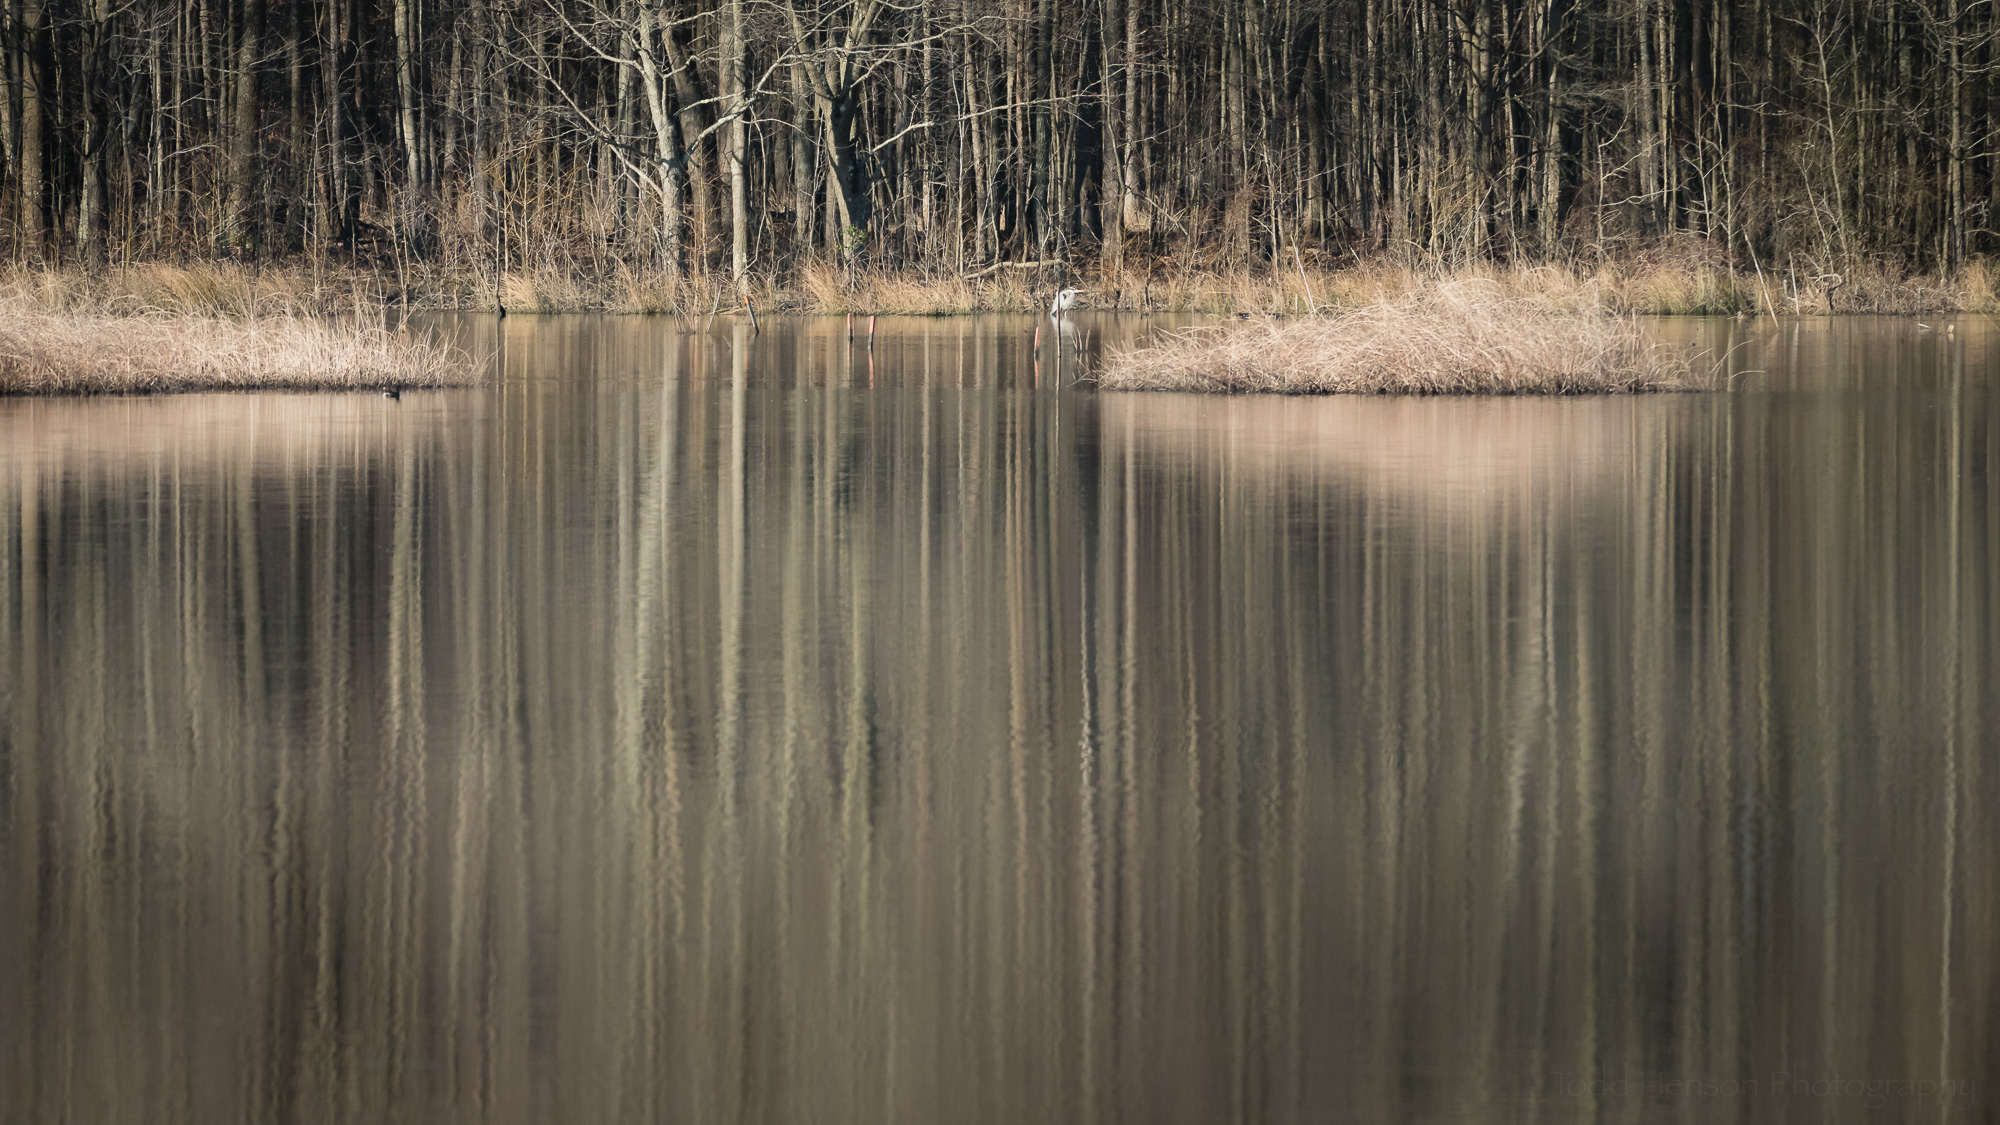 Reflections in the Wetlands . Click on the image for a larger view.